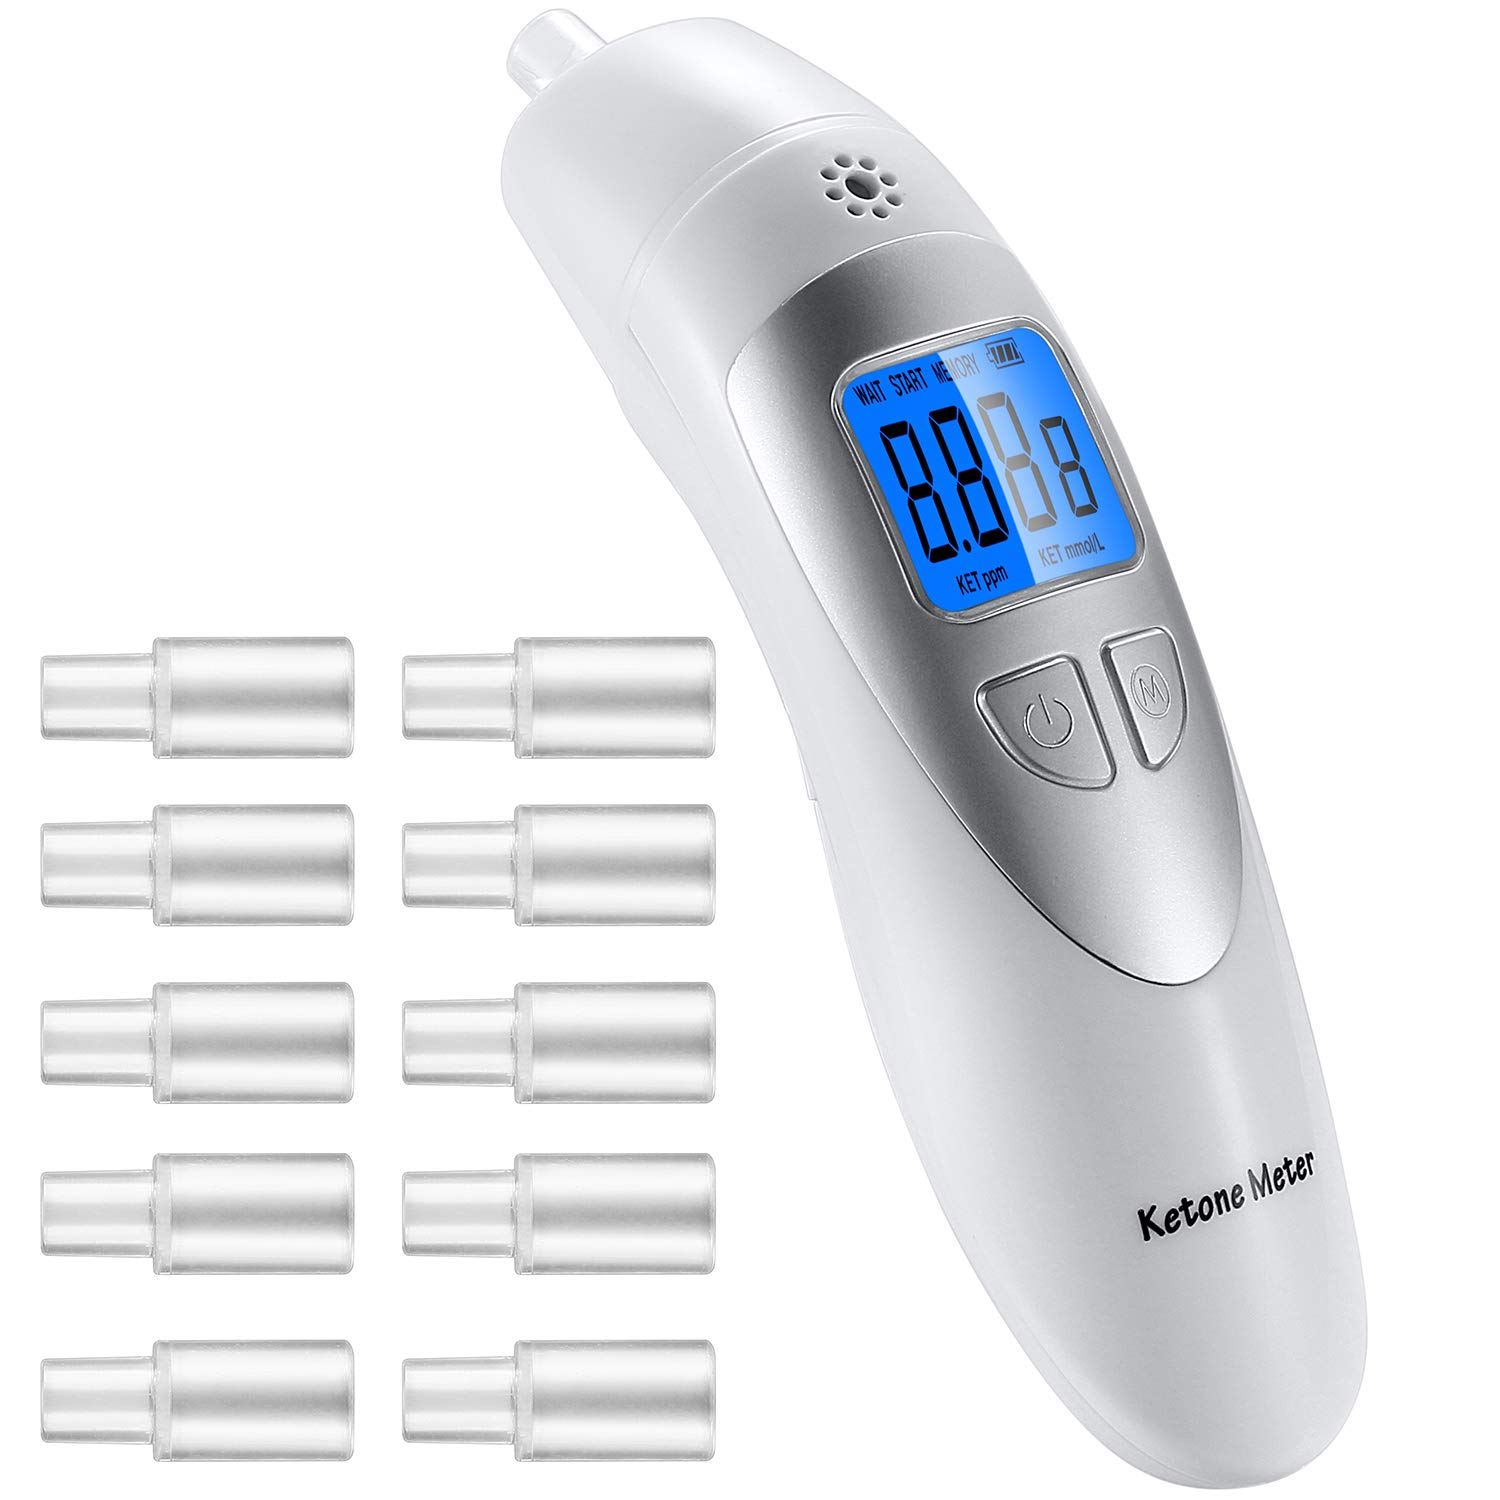 Ketone Monitor with New Technology Semi-Conductor Sensor to Test The Ketone Content by Breath by Huainafajk